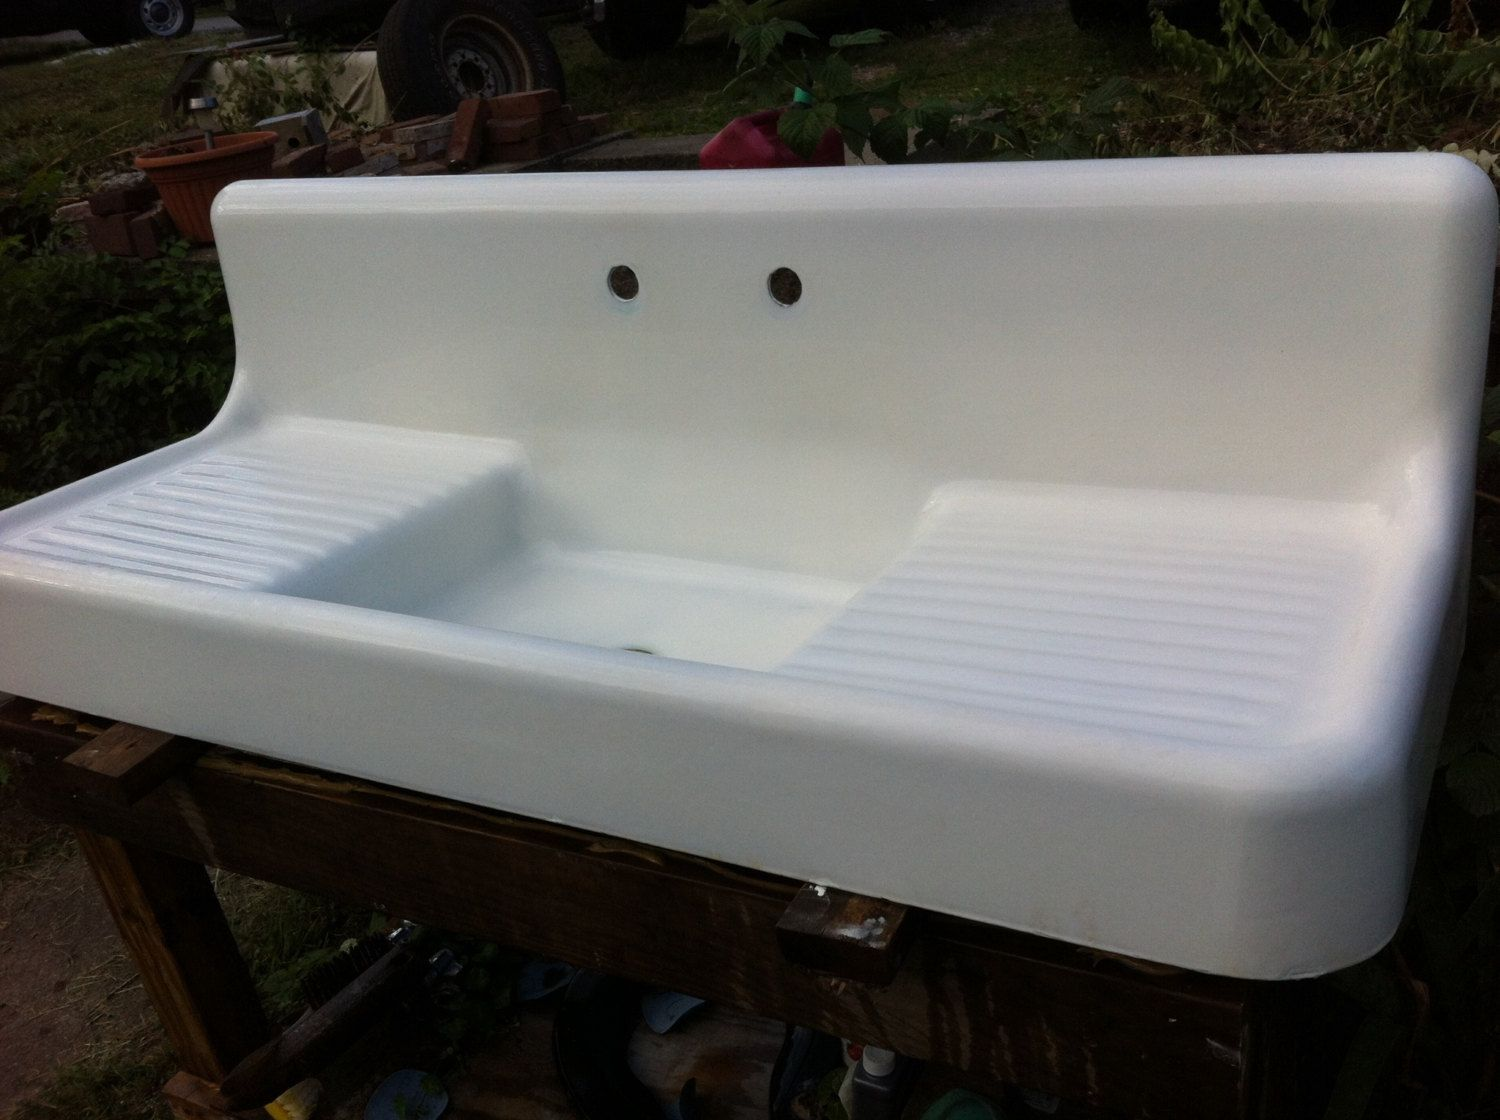 antique kitchen sinks banquette furniture double drainboard highback apron farm vintage sink